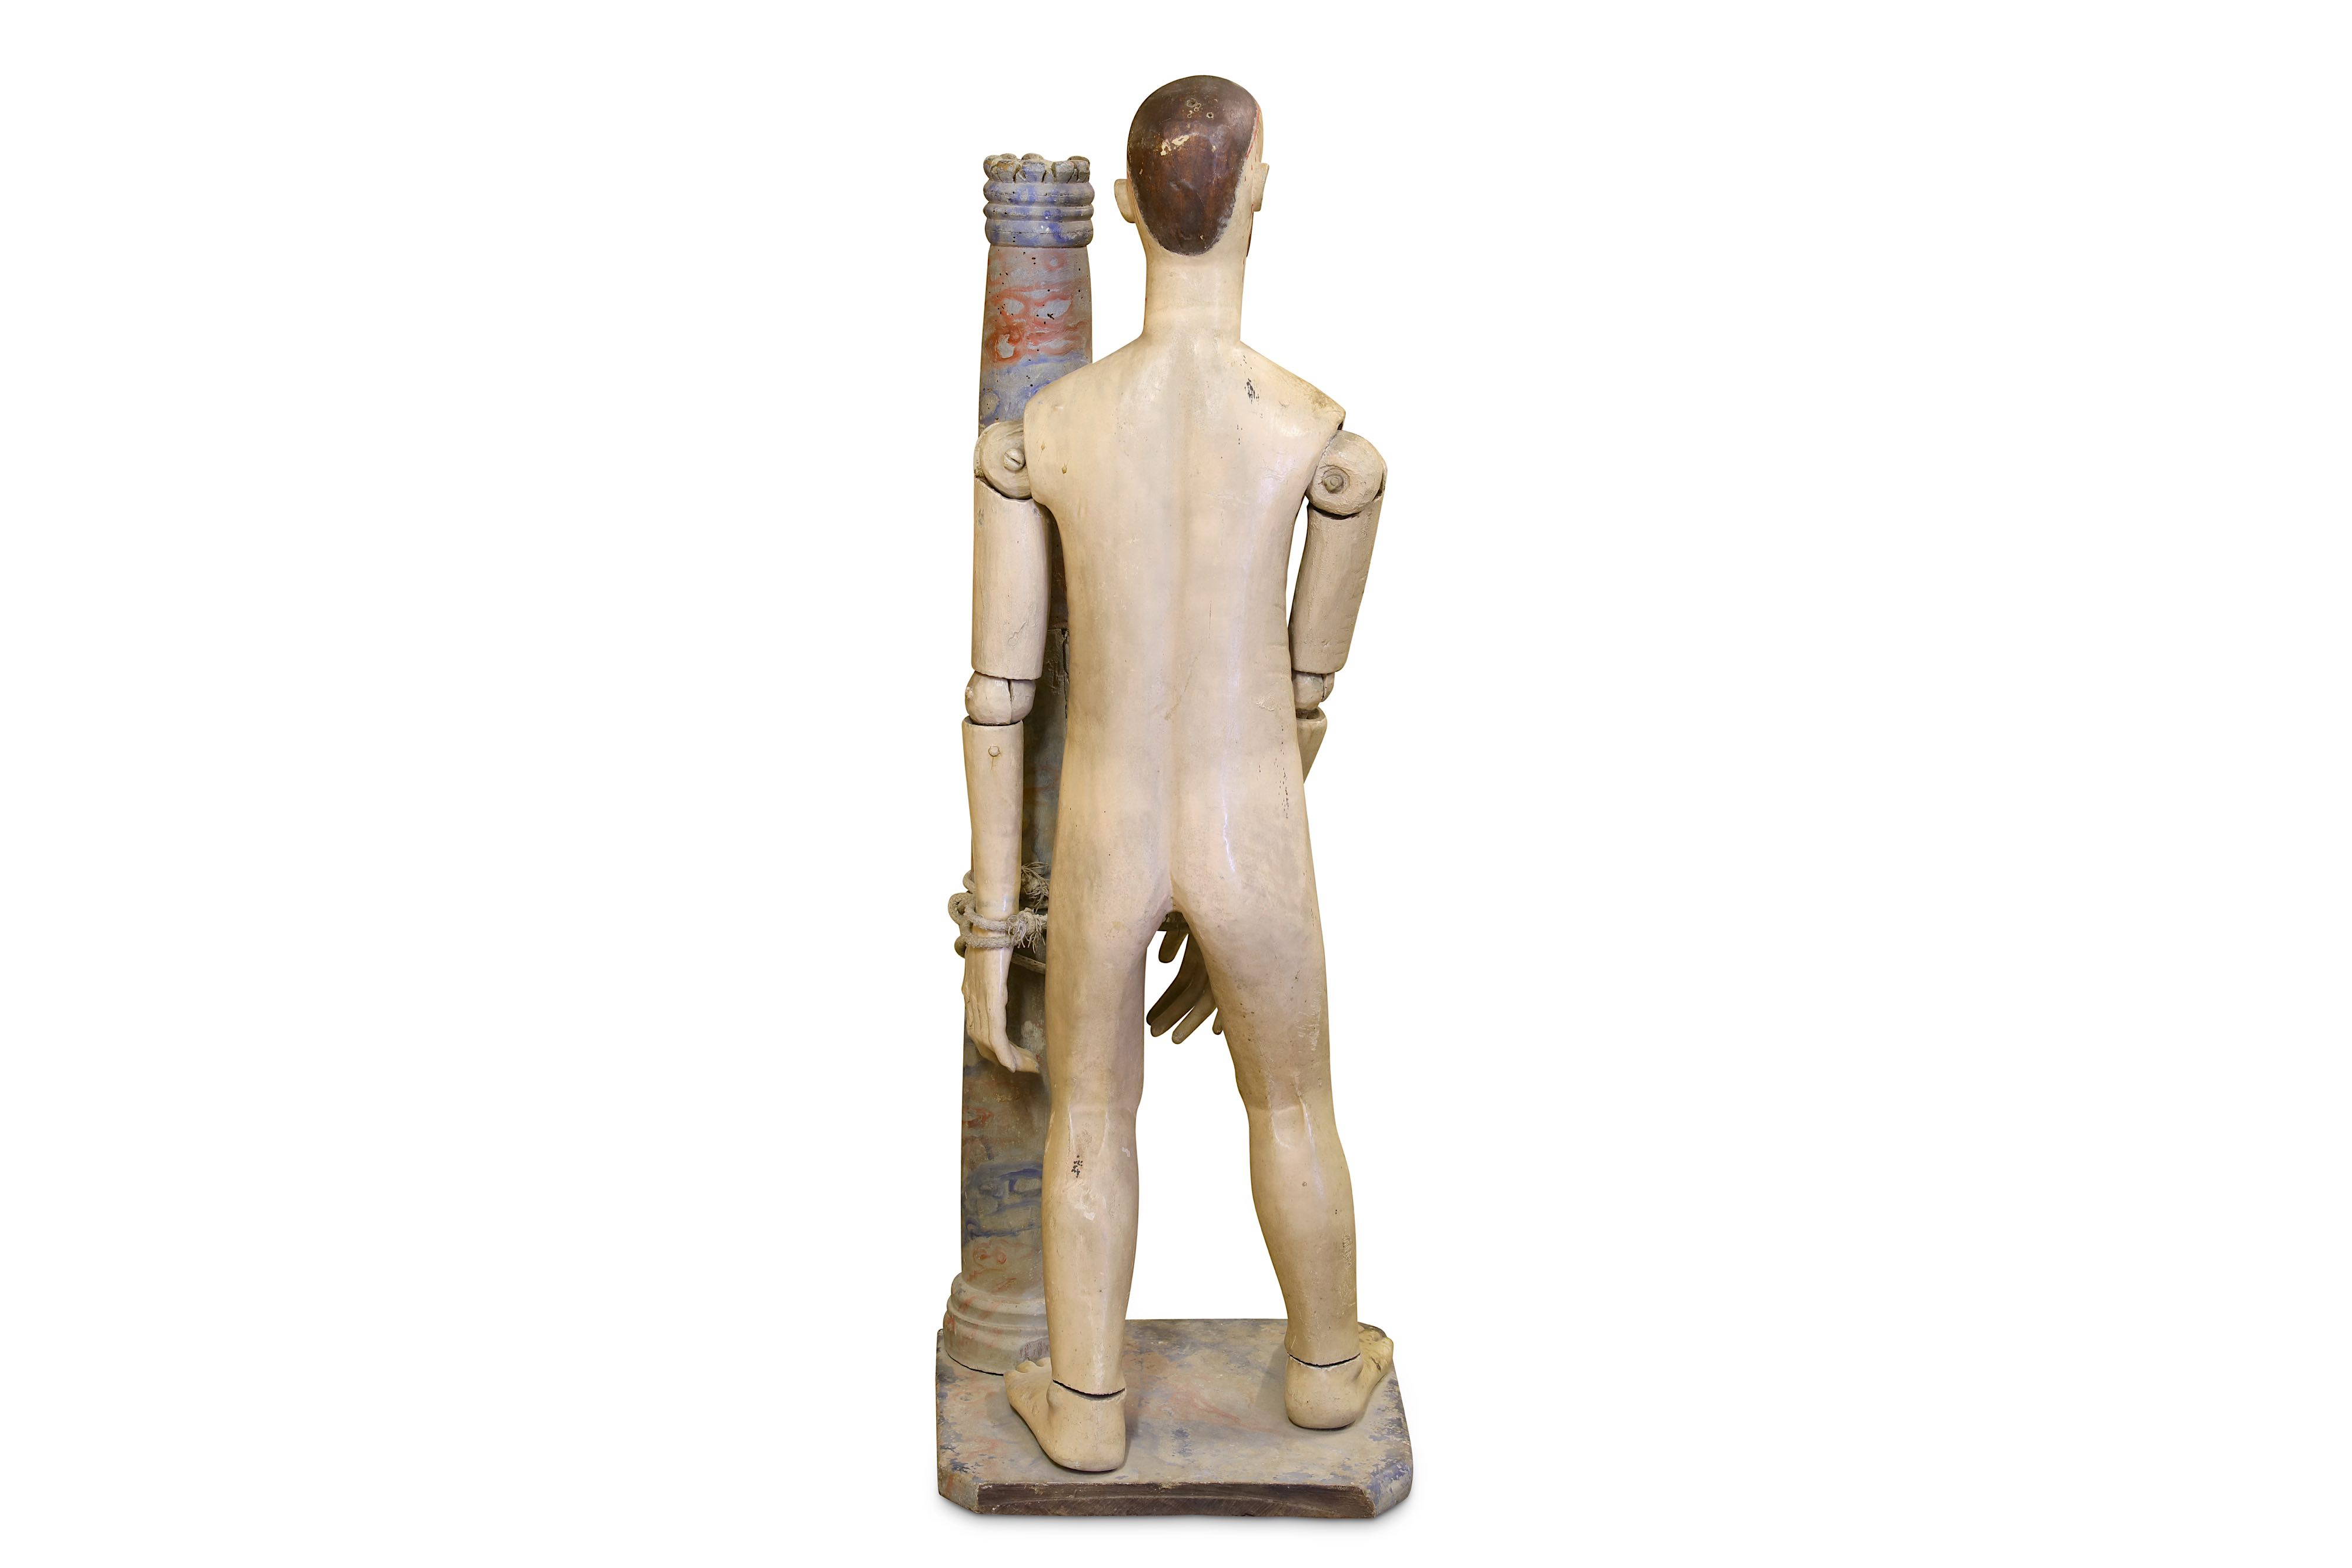 A 19TH CENTURY CARVED WOOD AND POLYCHROME DECORATED FIGURE OF CHRIST SCOURGED - Image 3 of 4